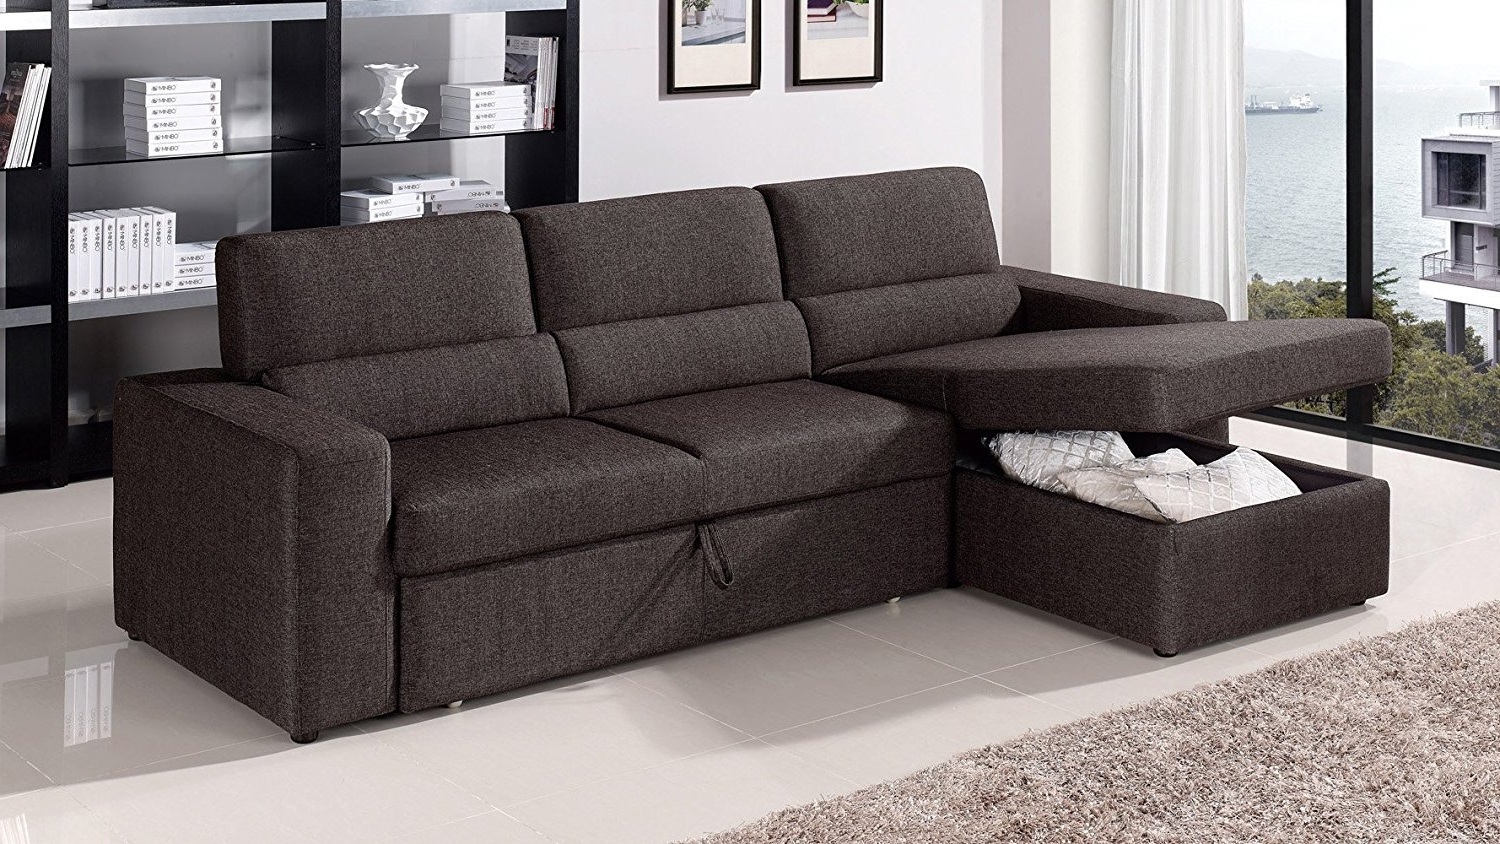 Sofas With Chaise With Recent Amazon: Black/brown Clubber Sleeper Sectional Sofa – Left (View 11 of 15)